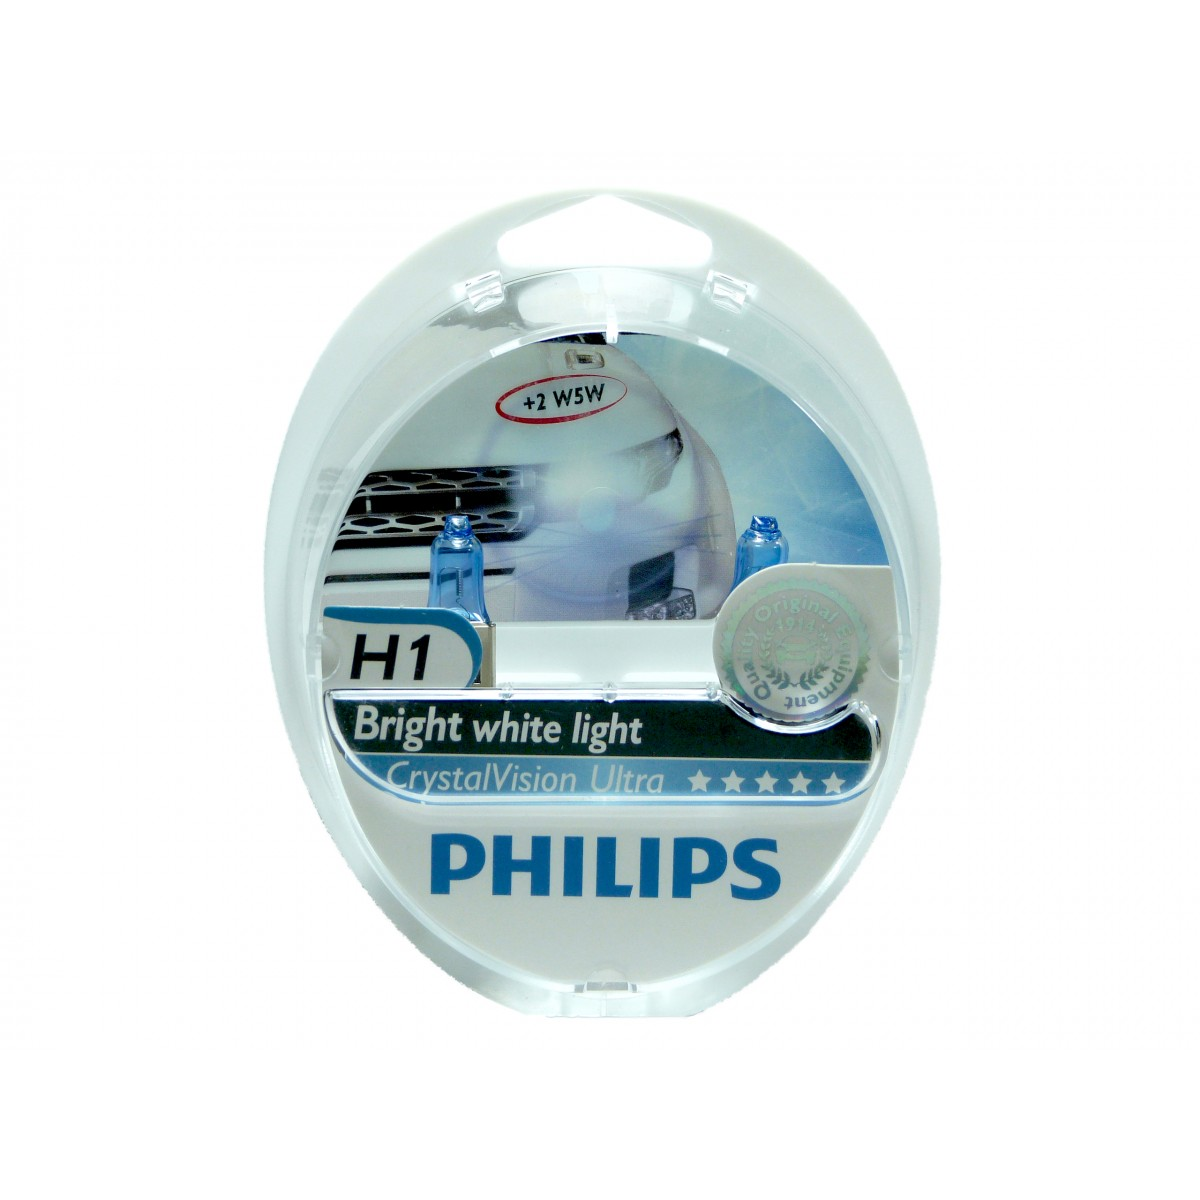 Kit Lampadas Philips Crystal Vision H1 Super Branca